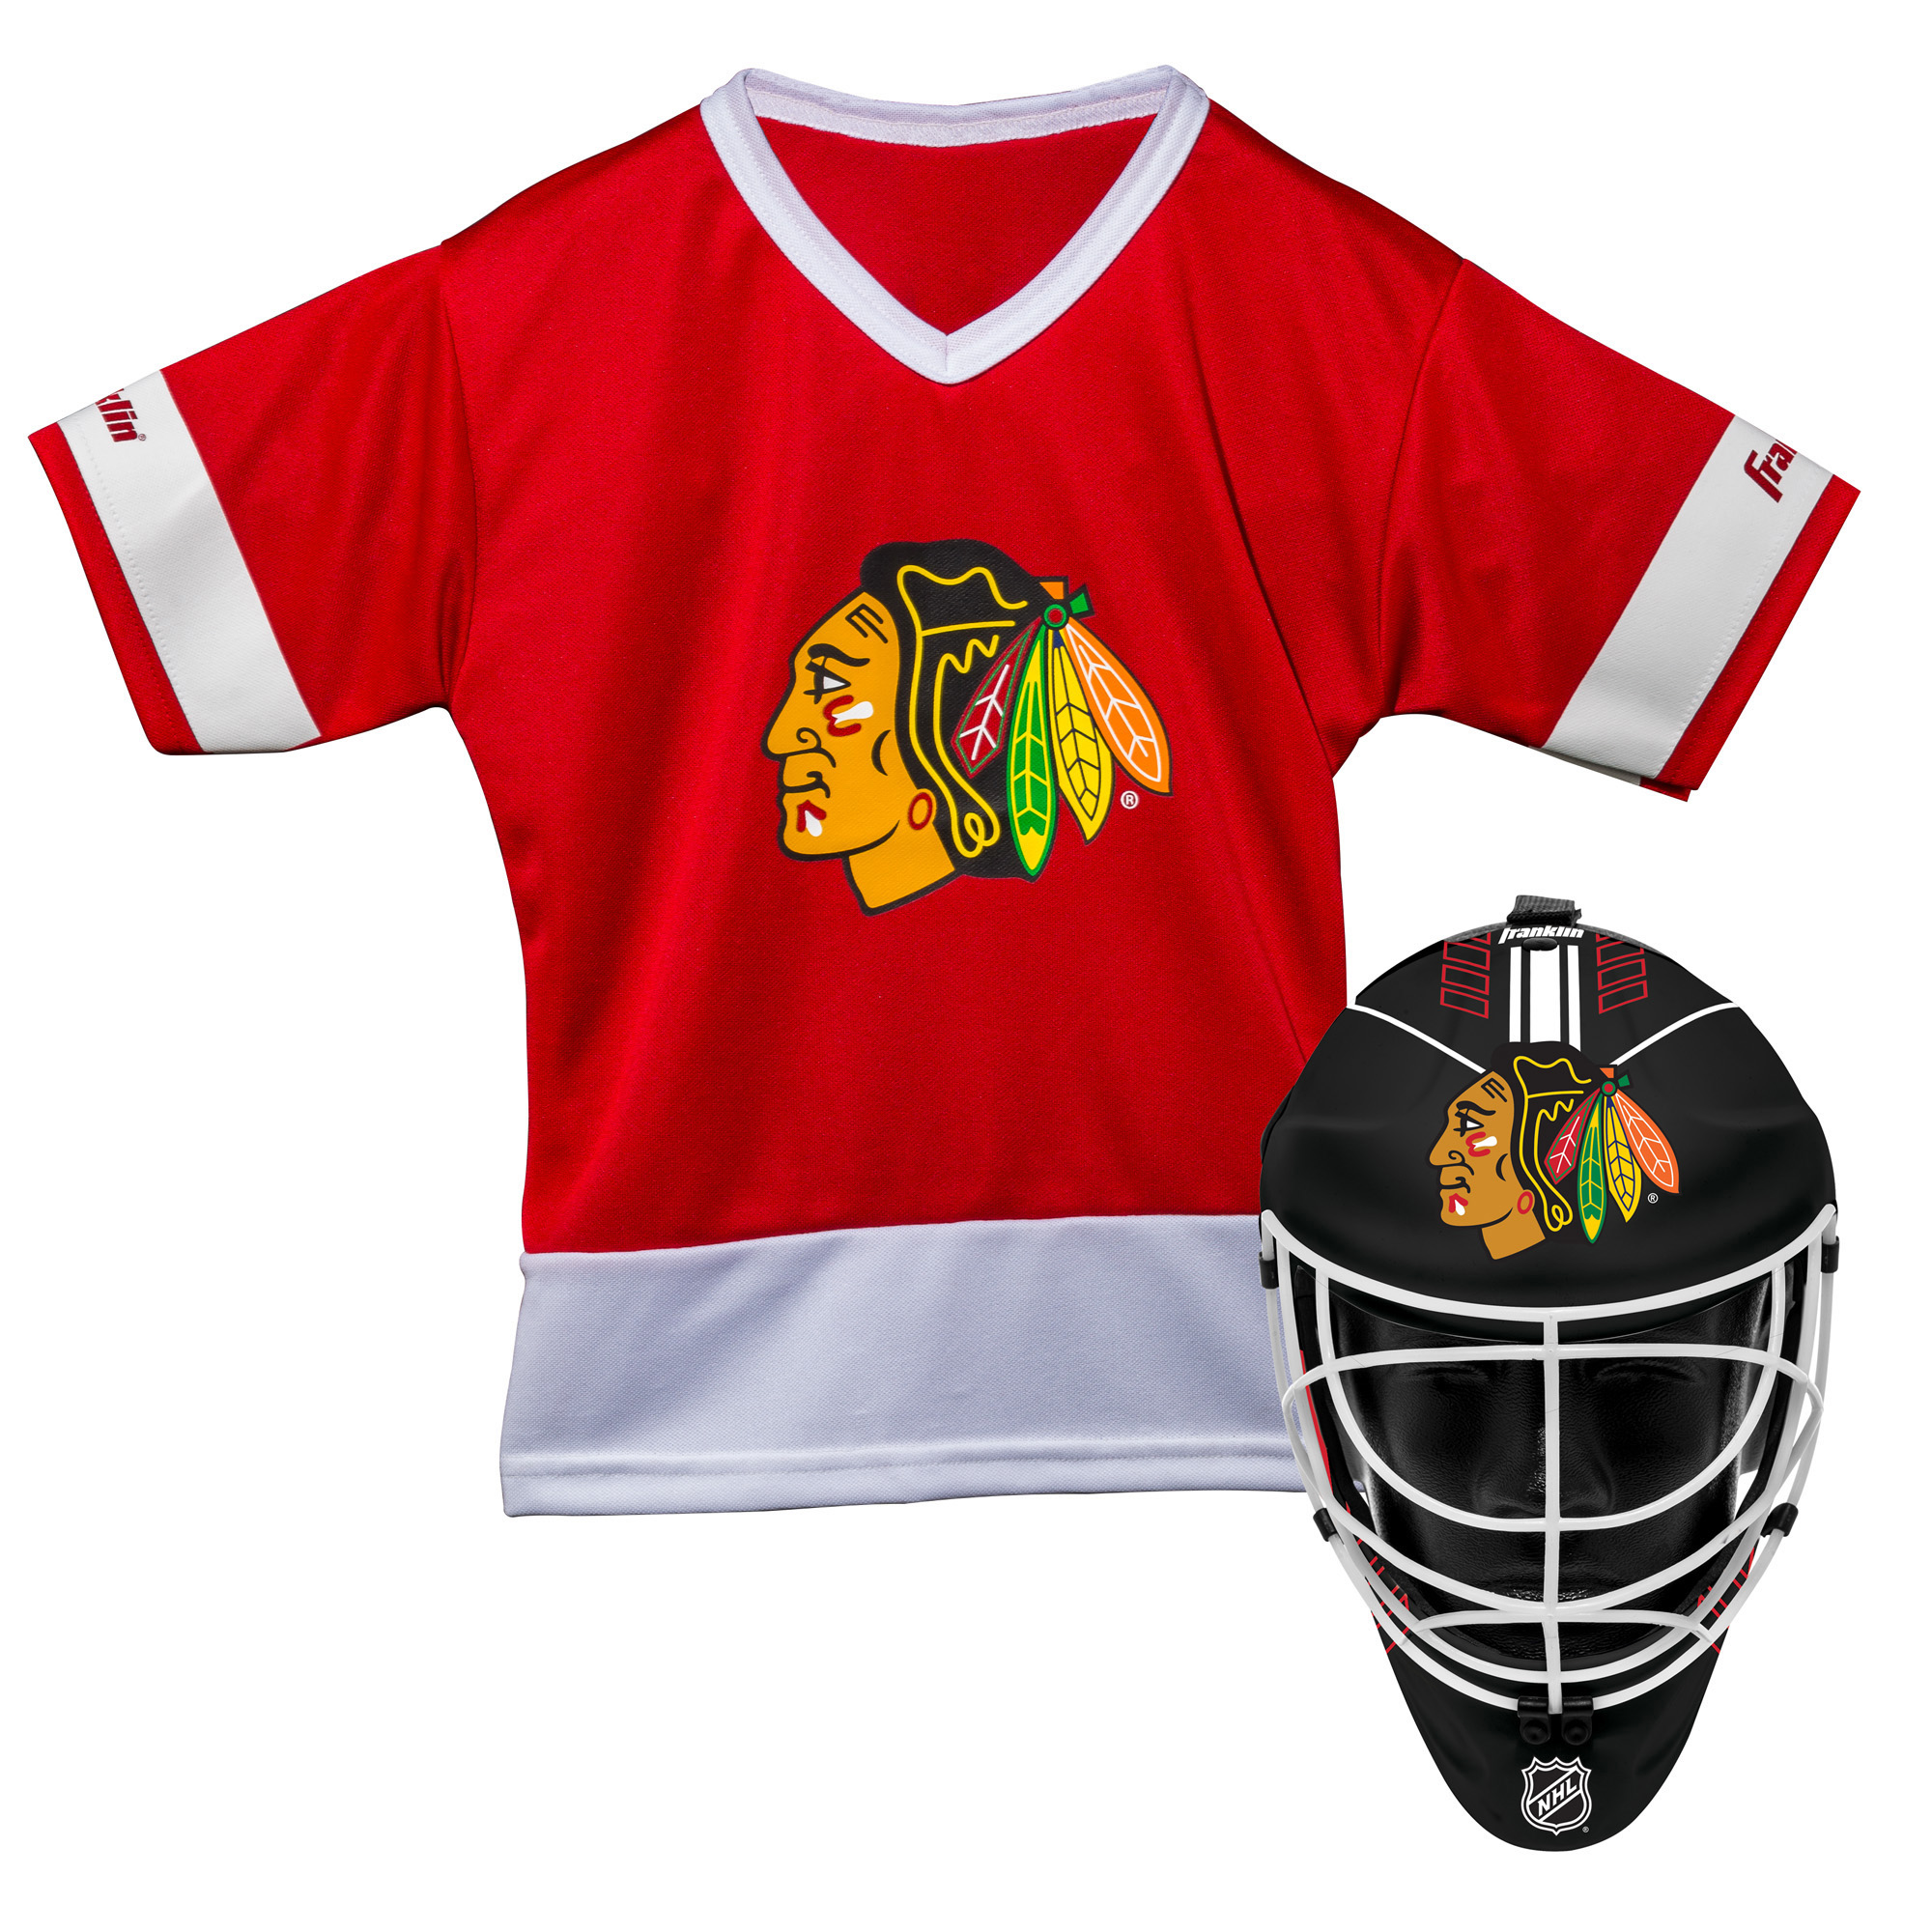 Franklin Sports NHL Chicago Blackhawks Youth Team Uniform Set